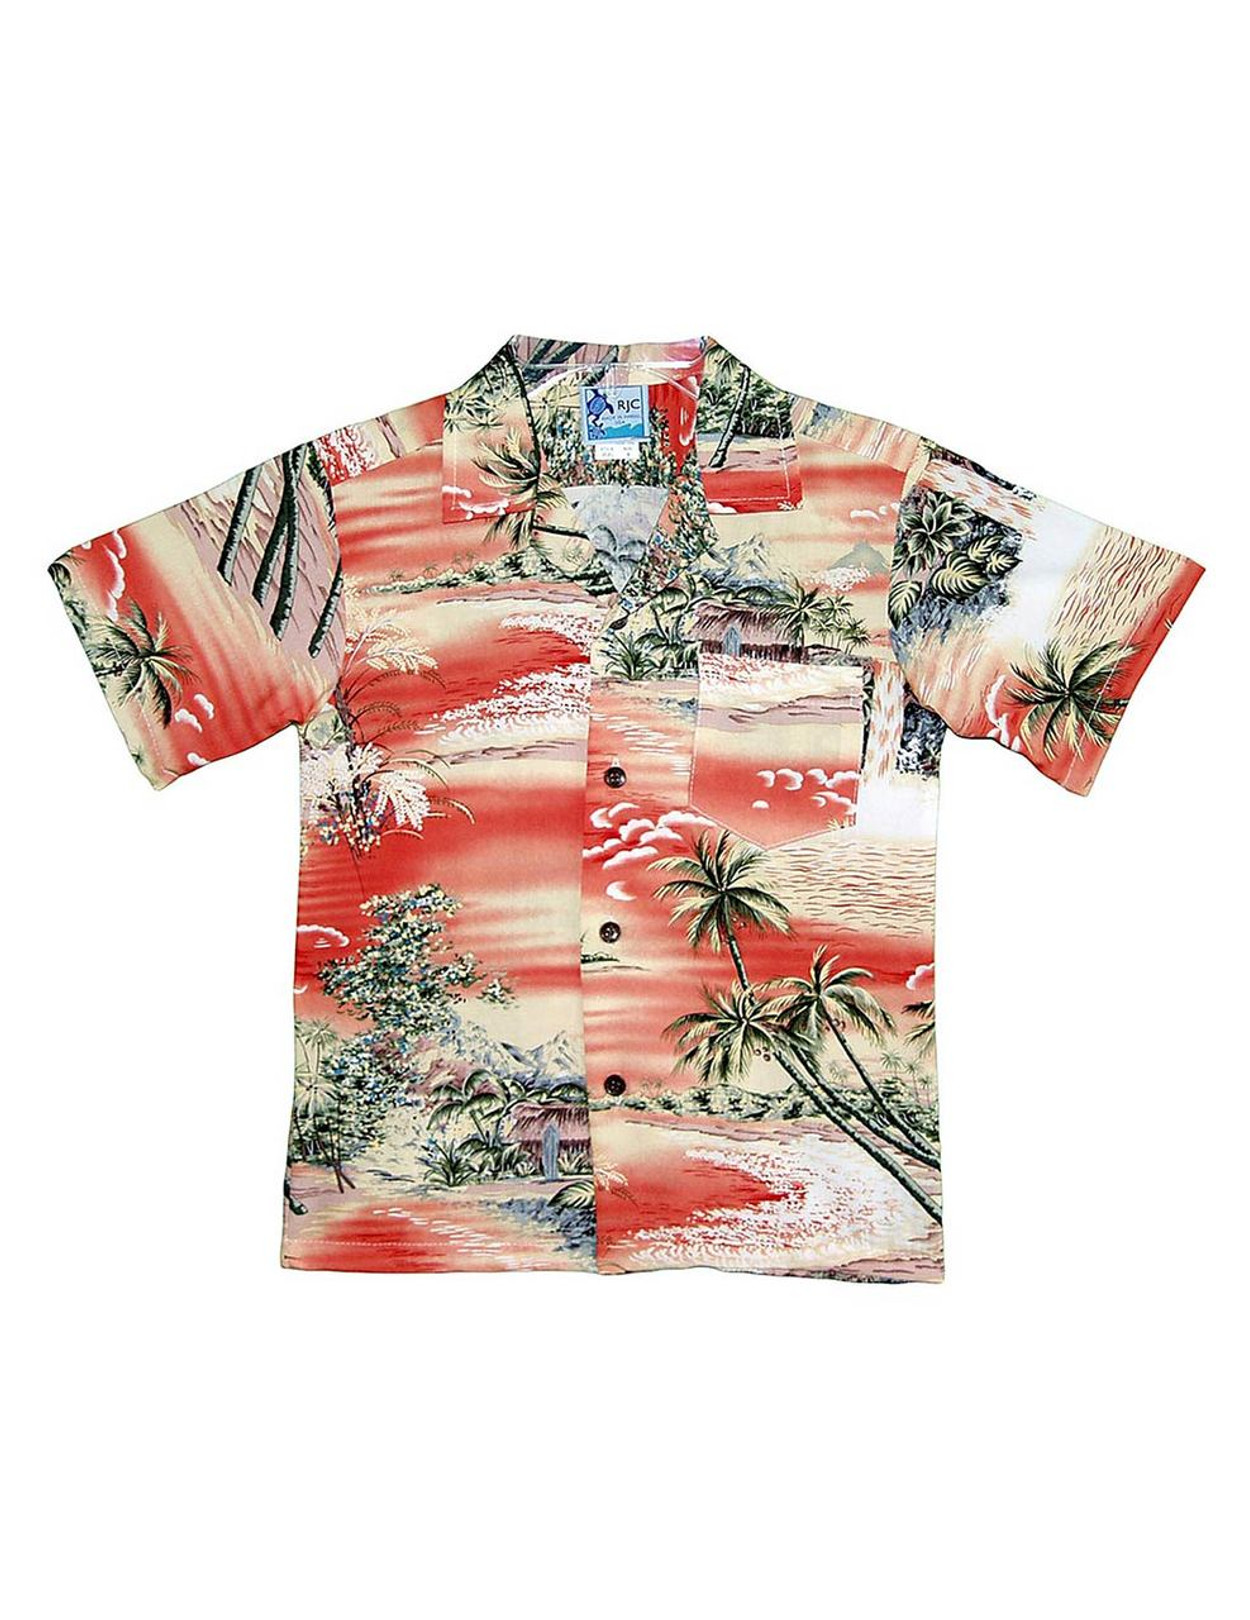 93c9c02e Boy's Aloha Shirt Island Paradise 100% Rayon Fabric Open Pointed Folded  Collar Genuine Coconut Buttons